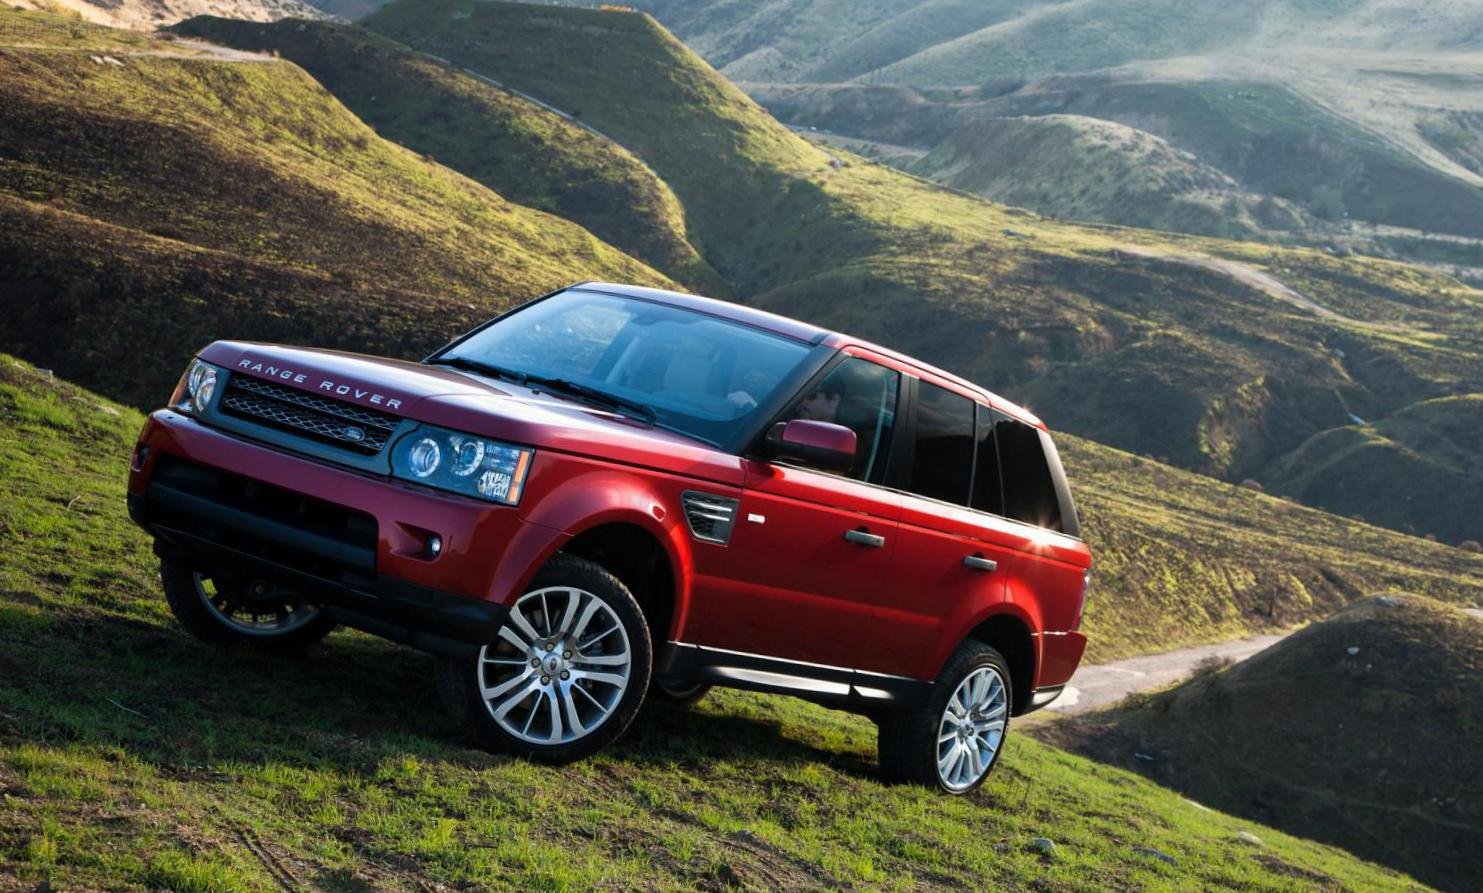 Range Rover Sport Land Rover prices 2010